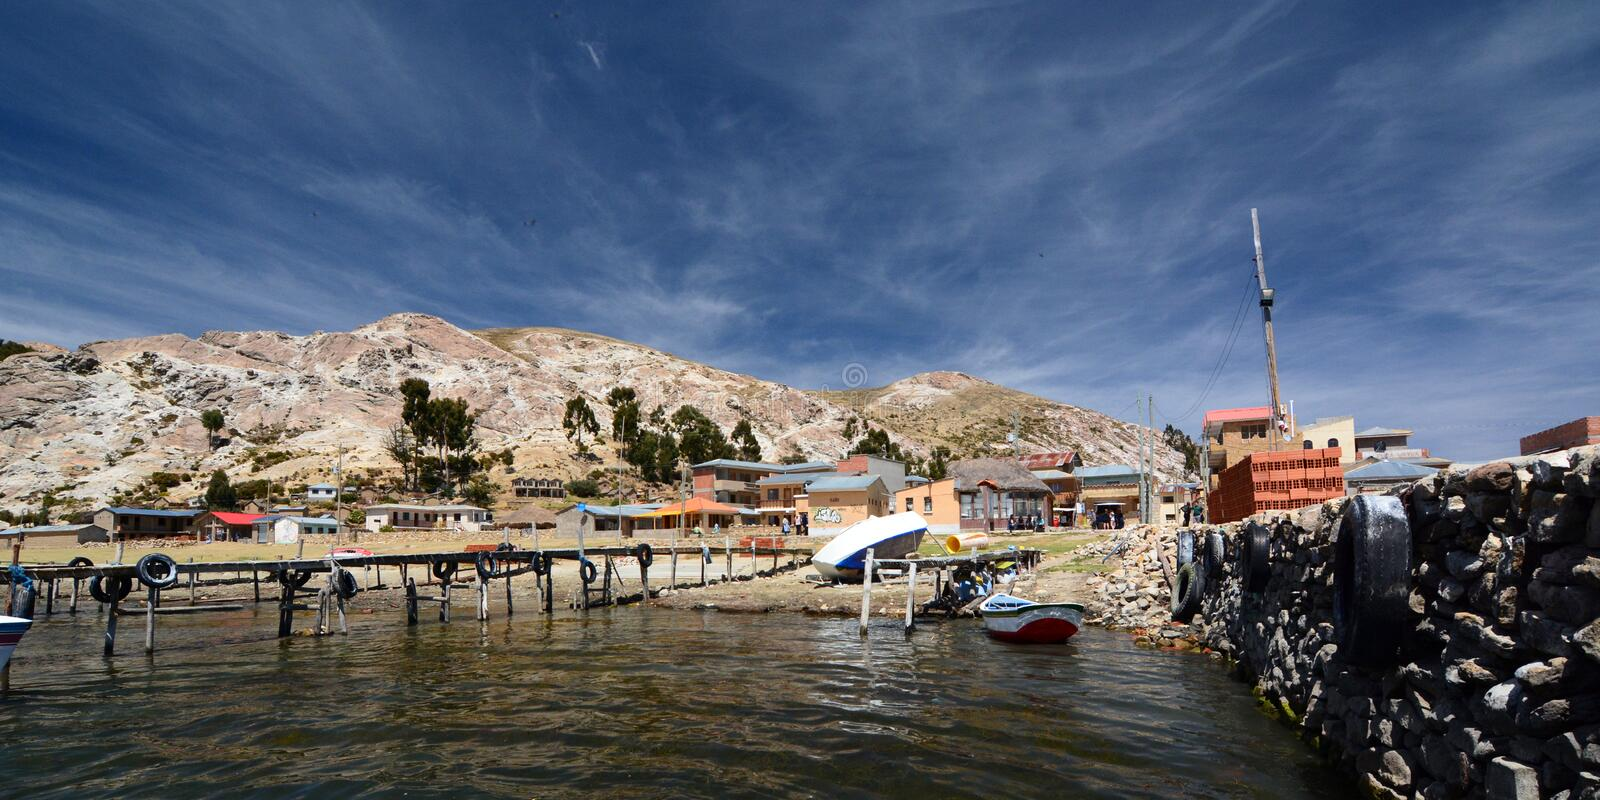 View from the main pier. Comunidad Challapampa. Isla del Sol. Lake Titicaca. Bolivia. Lake Titicaca is a large, deep lake in the Andes on the border of Peru and stock image